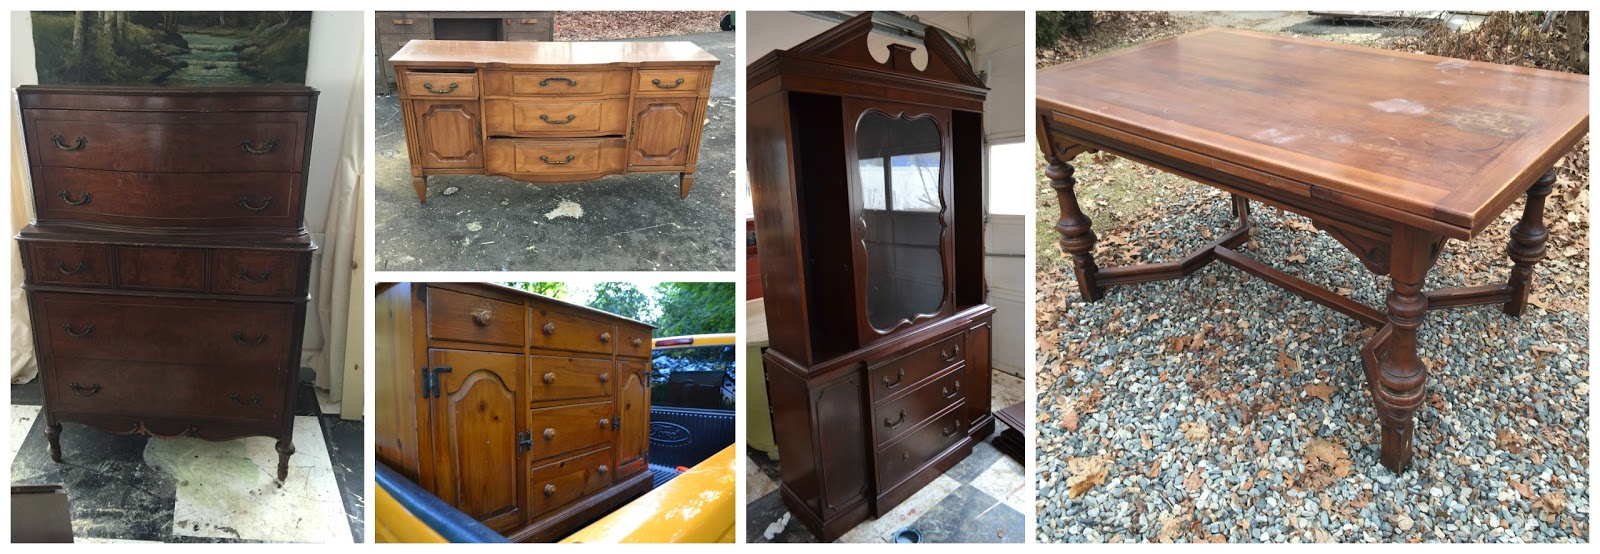 Heir and Space How to Buy Furniture on Craigslist